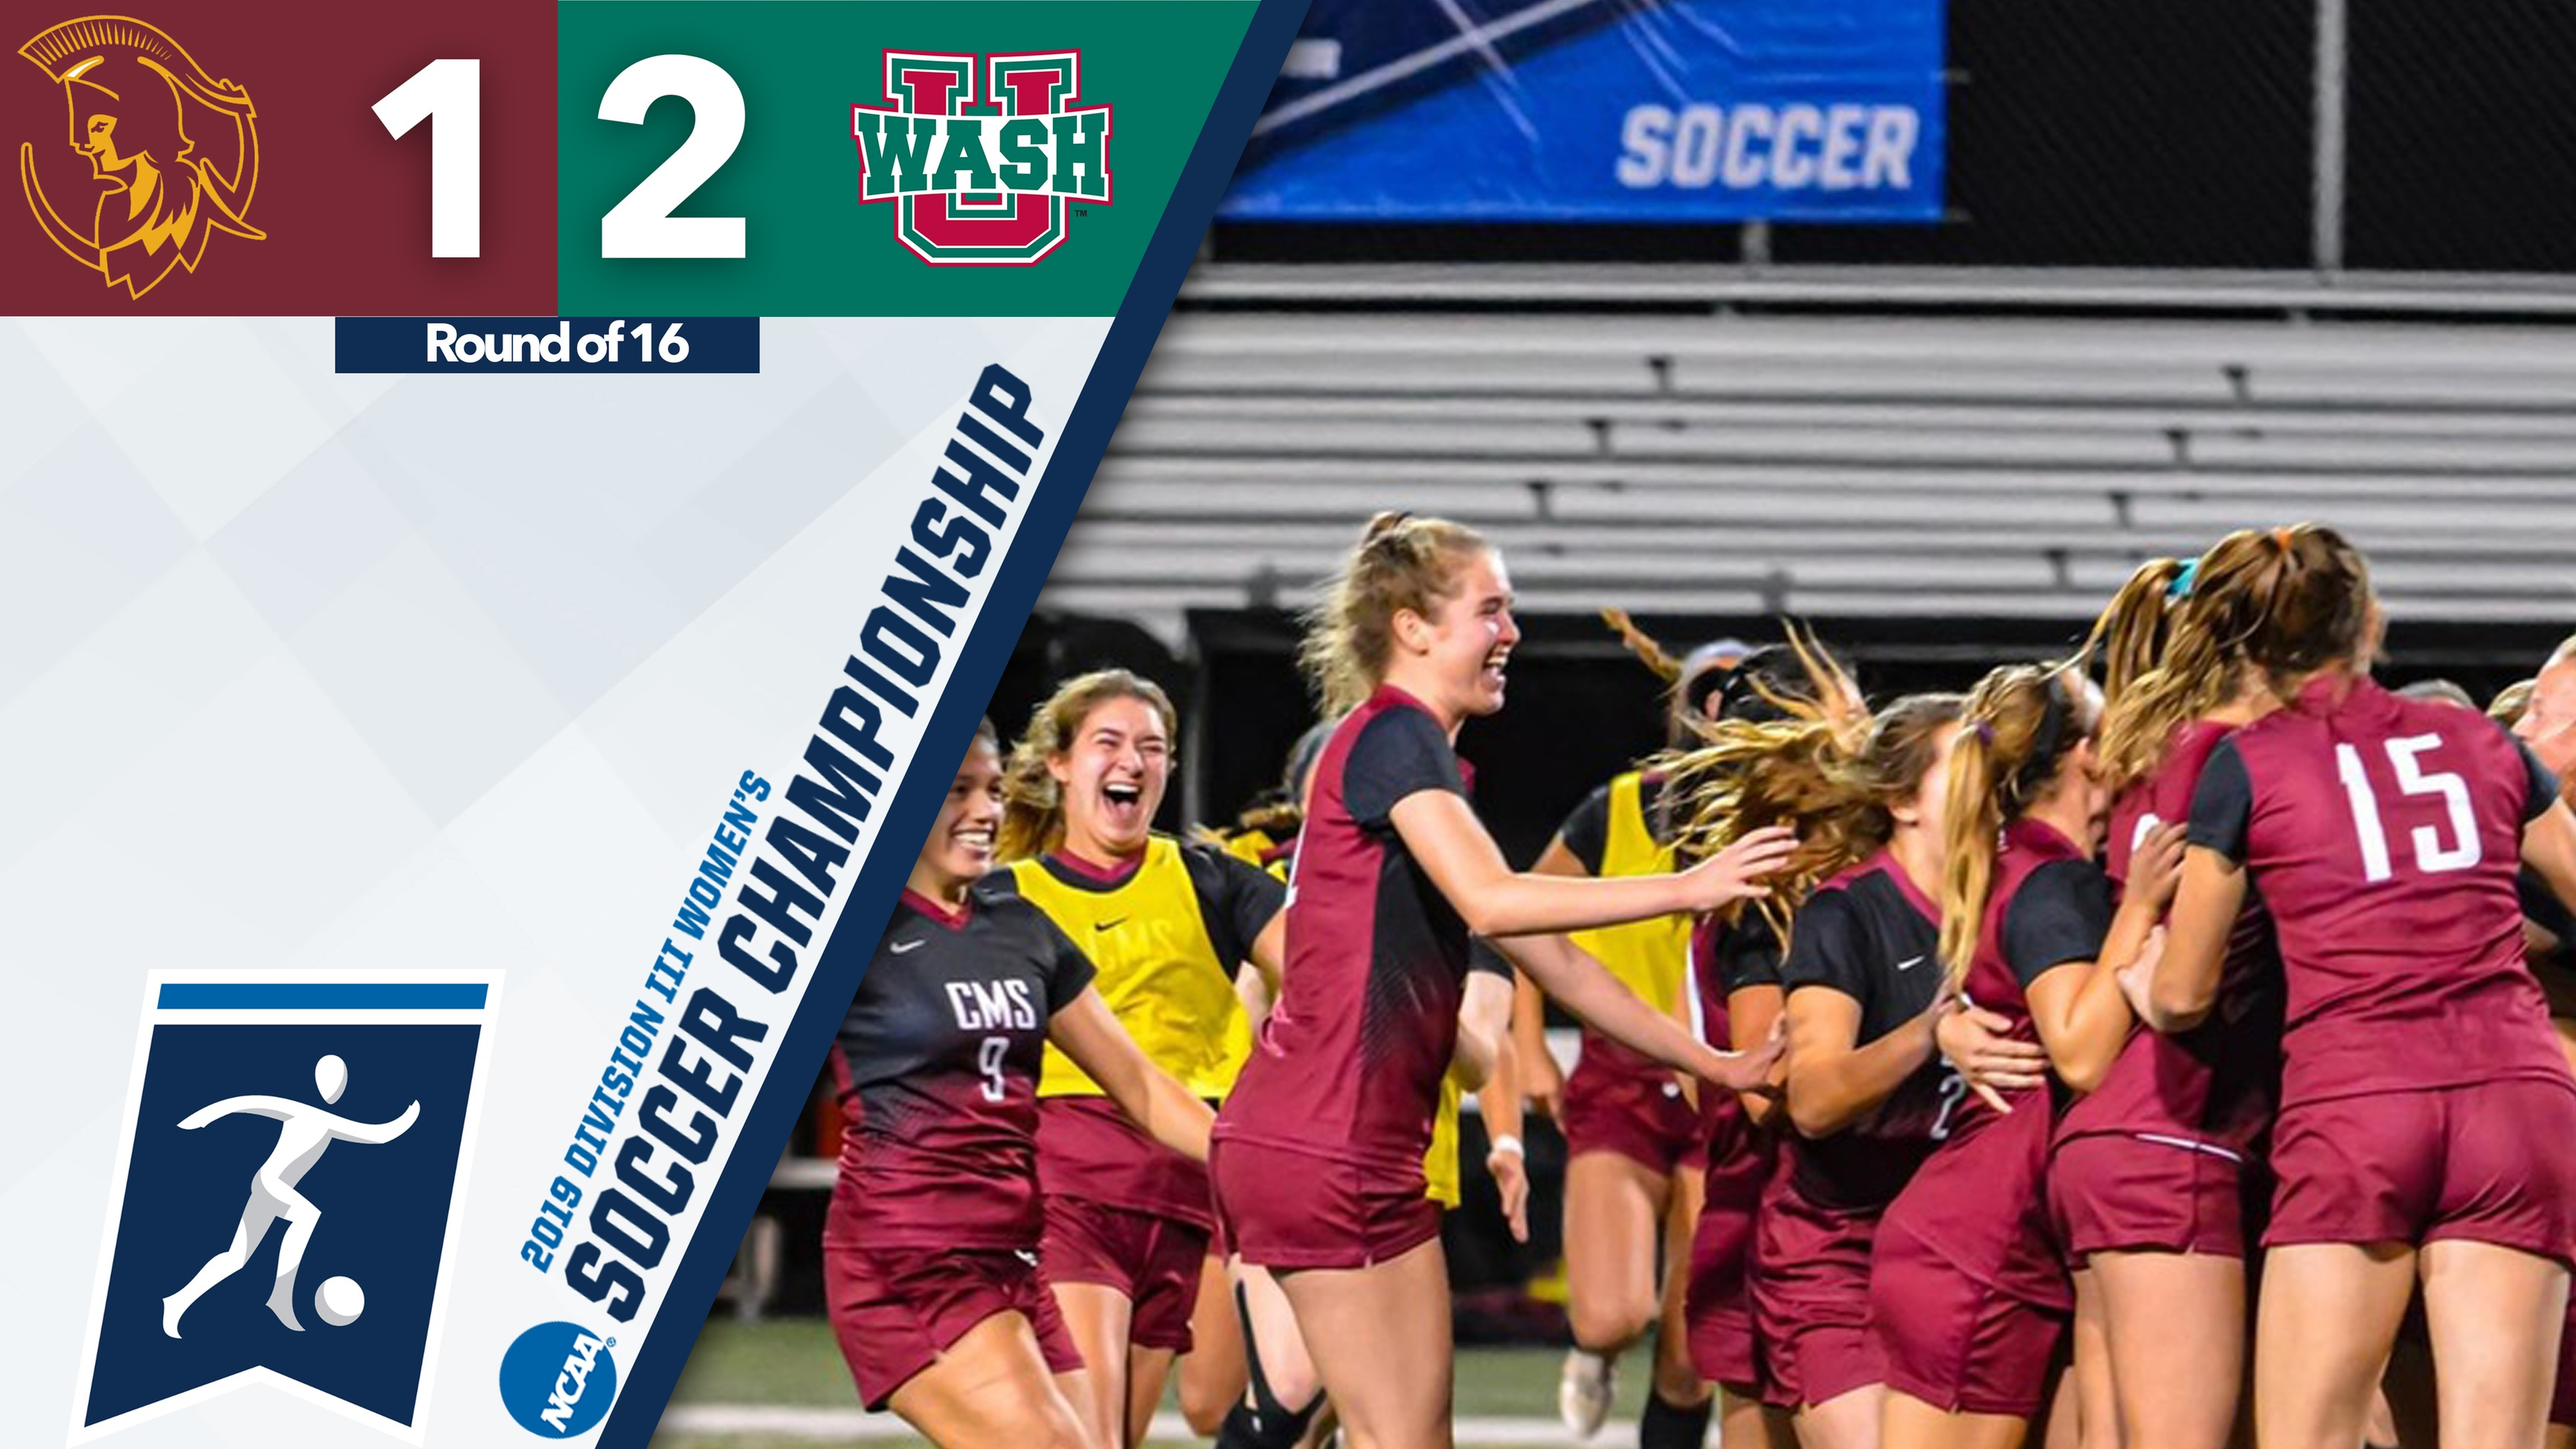 CMS Falls to Wash U, 2-1 in OT in NCAA Tournament Third Round Play